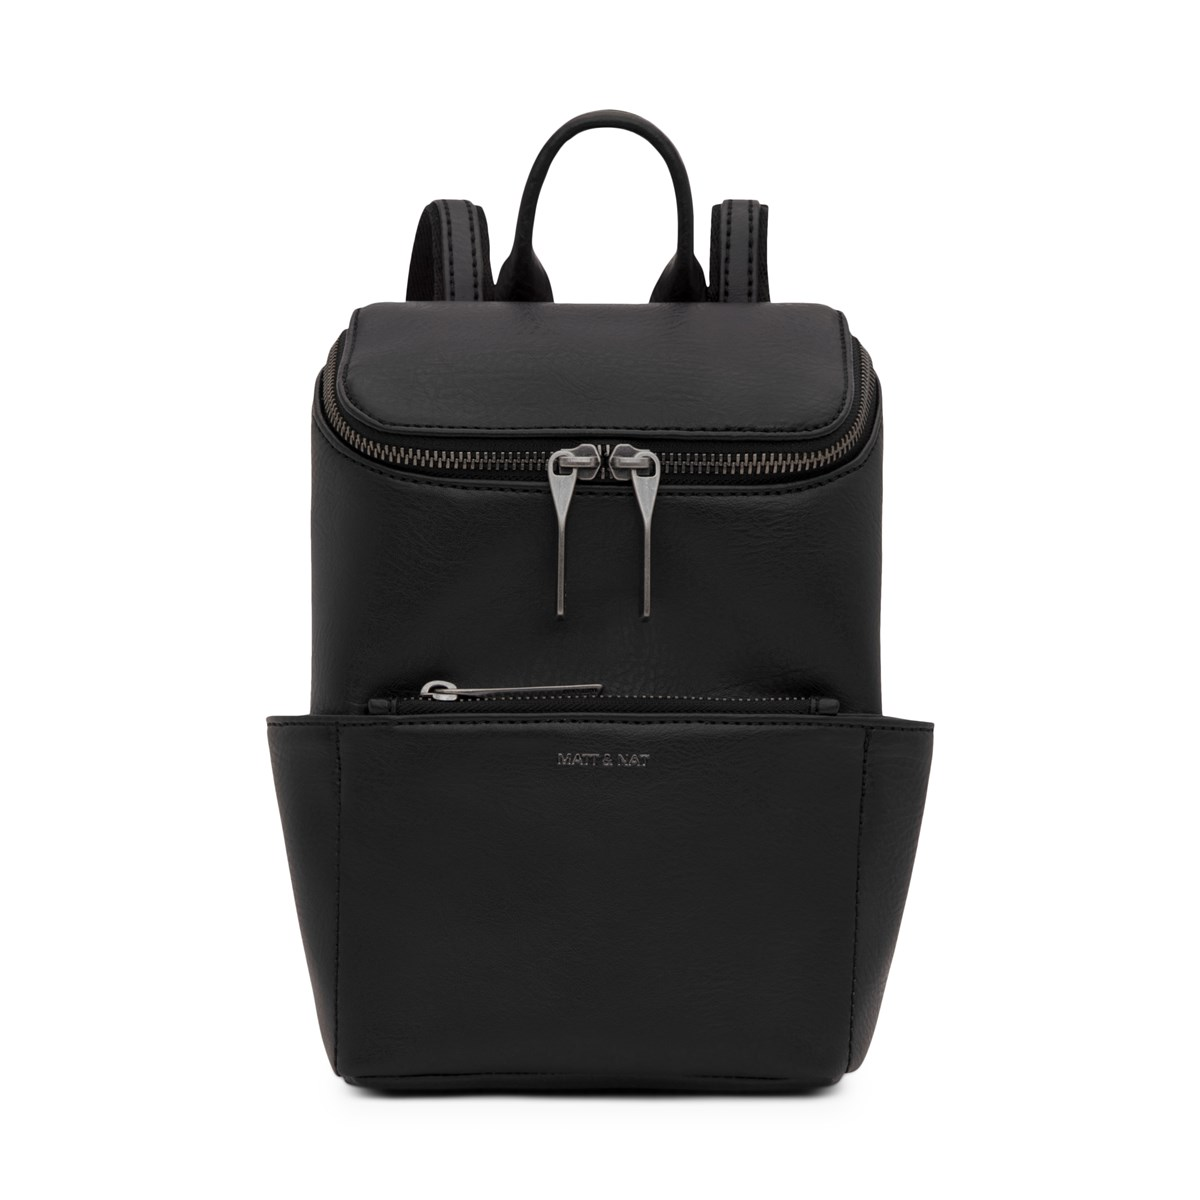 Brave Mini Backpack in Black